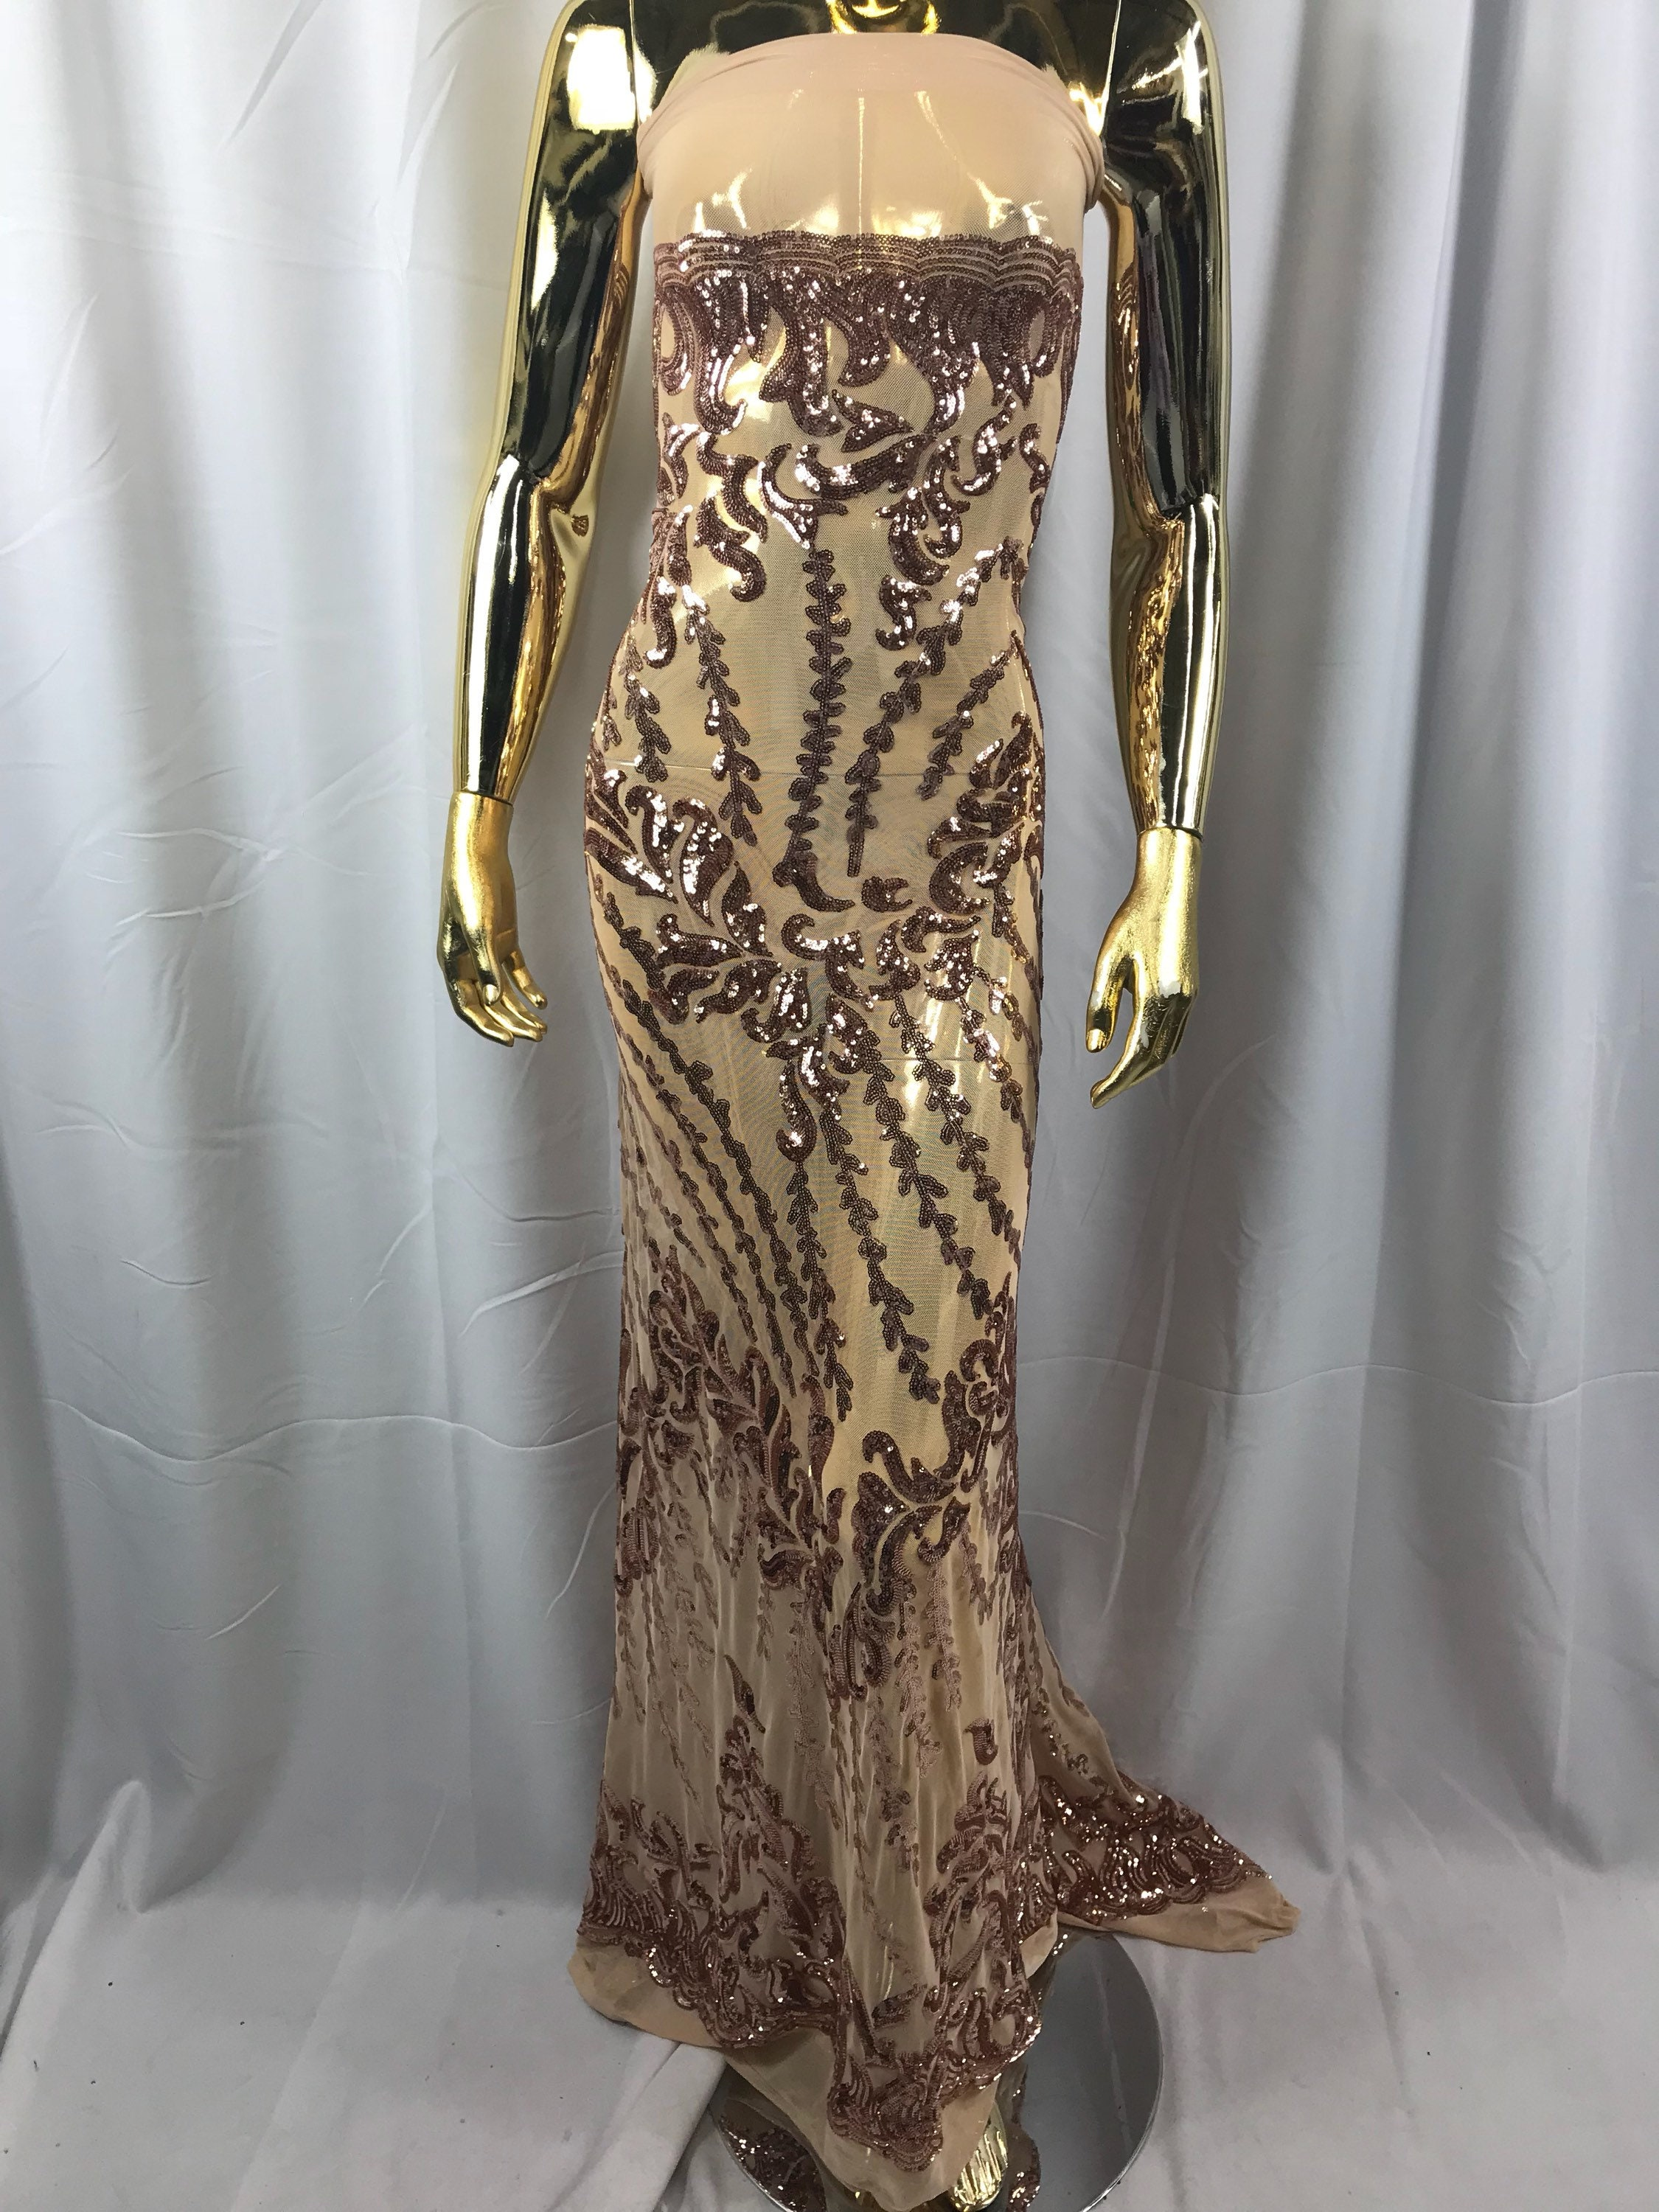 5a2a7d93f95 4 Way Stretch Fabric - Champagne Embroidered Sequins Lace Fashion Dress  Power Mesh Wedding Decoration By The Yard